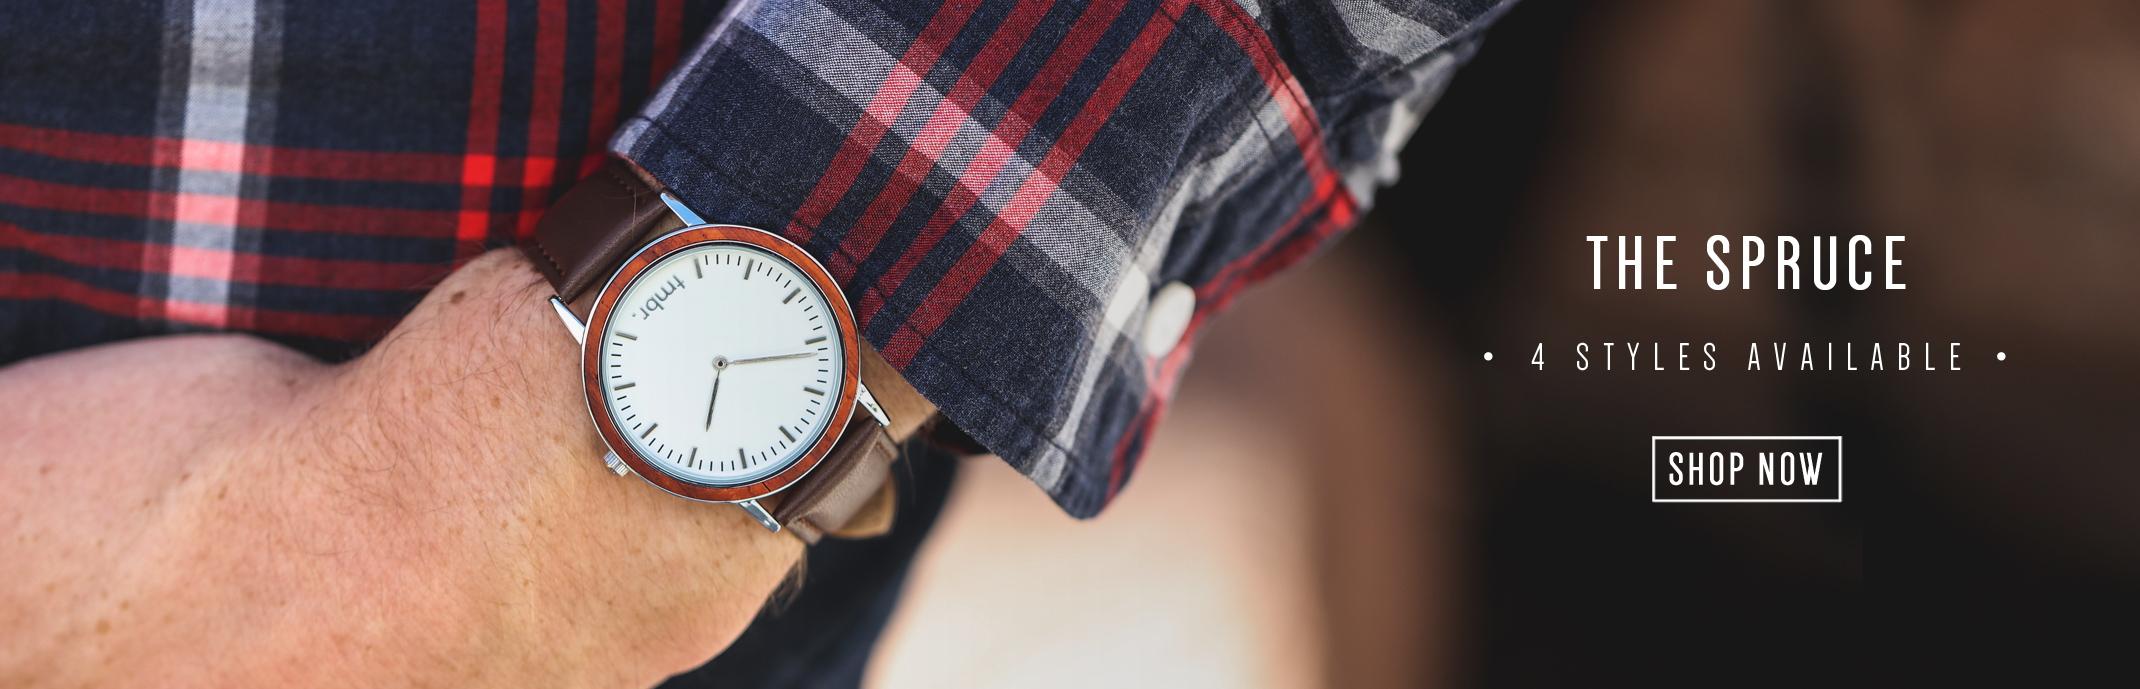 Tmbr Spruce Wood Watch